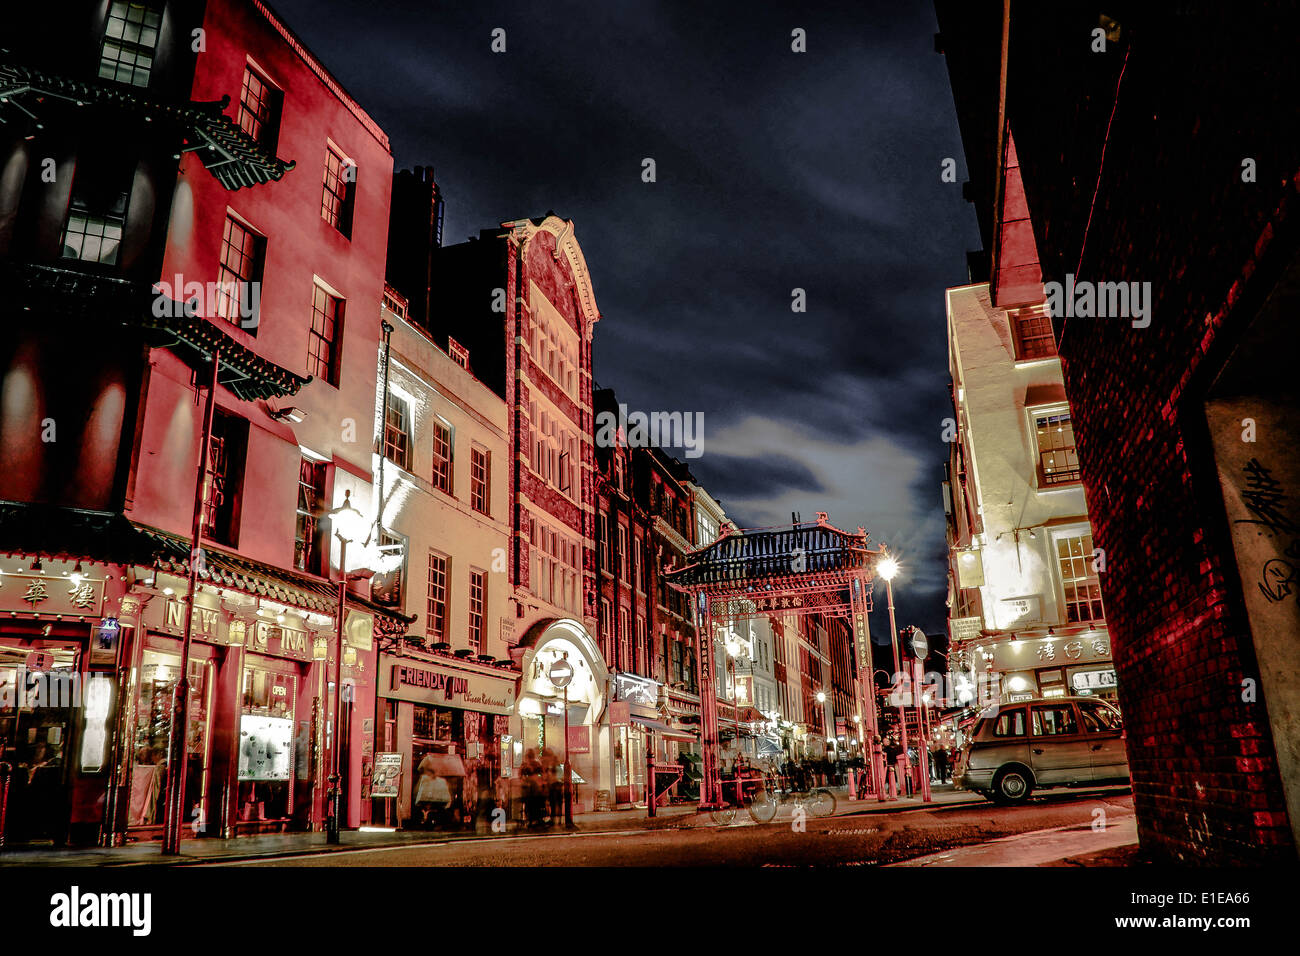 this picture was captured in China Town London - Stock Image